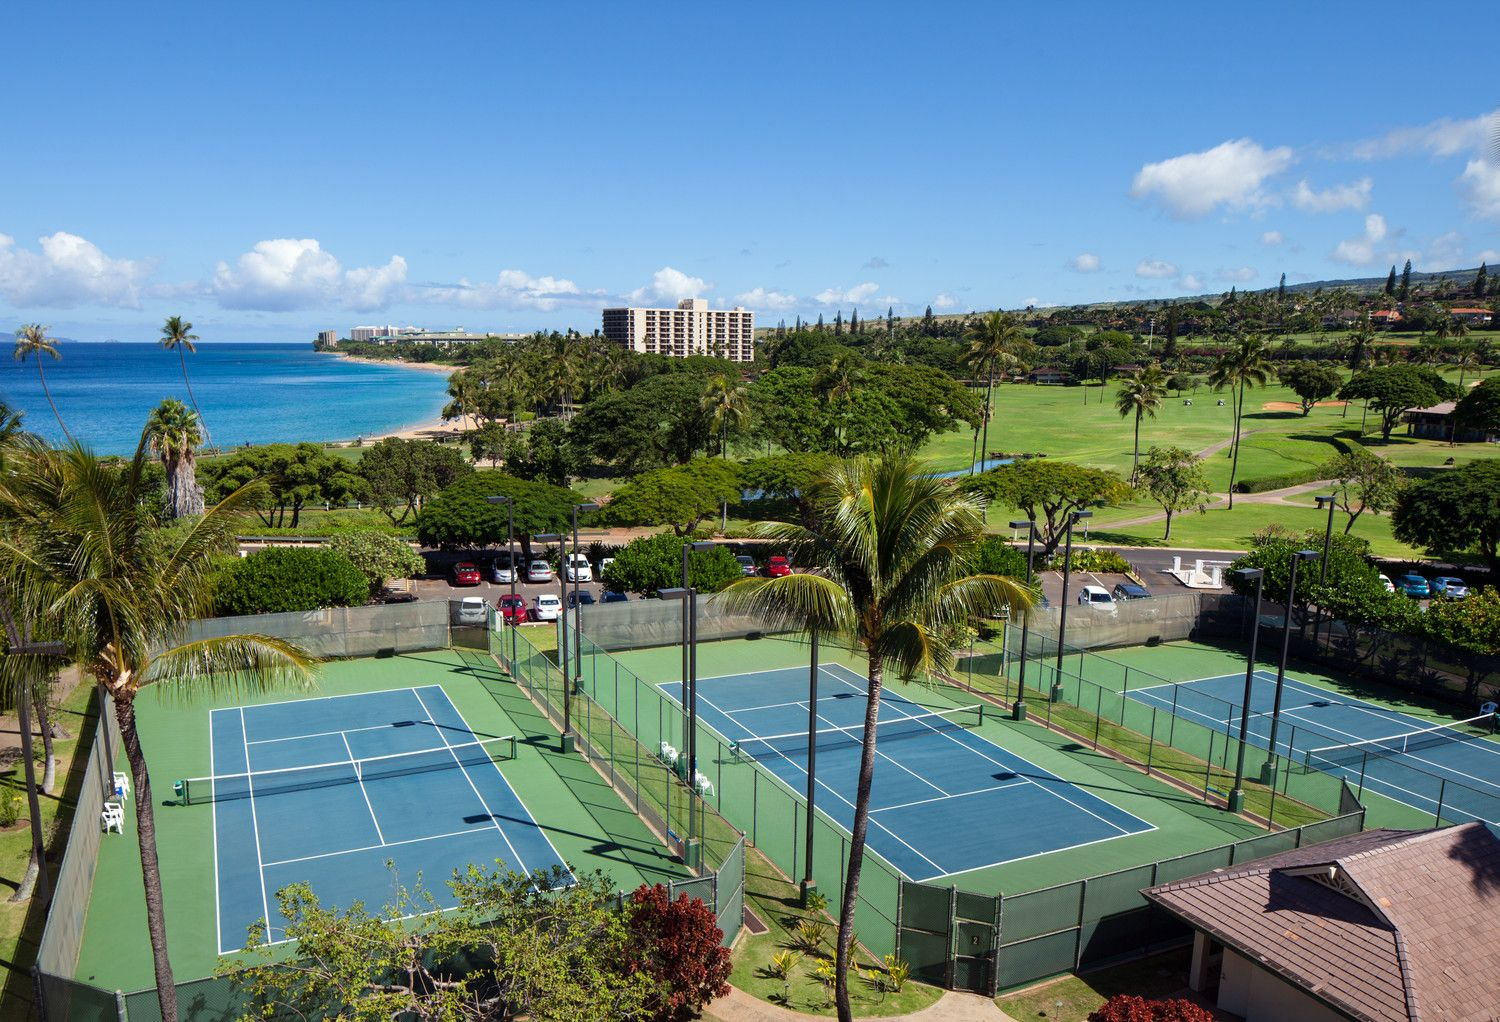 Sheraton Maui Resort & Spa - Maui activities